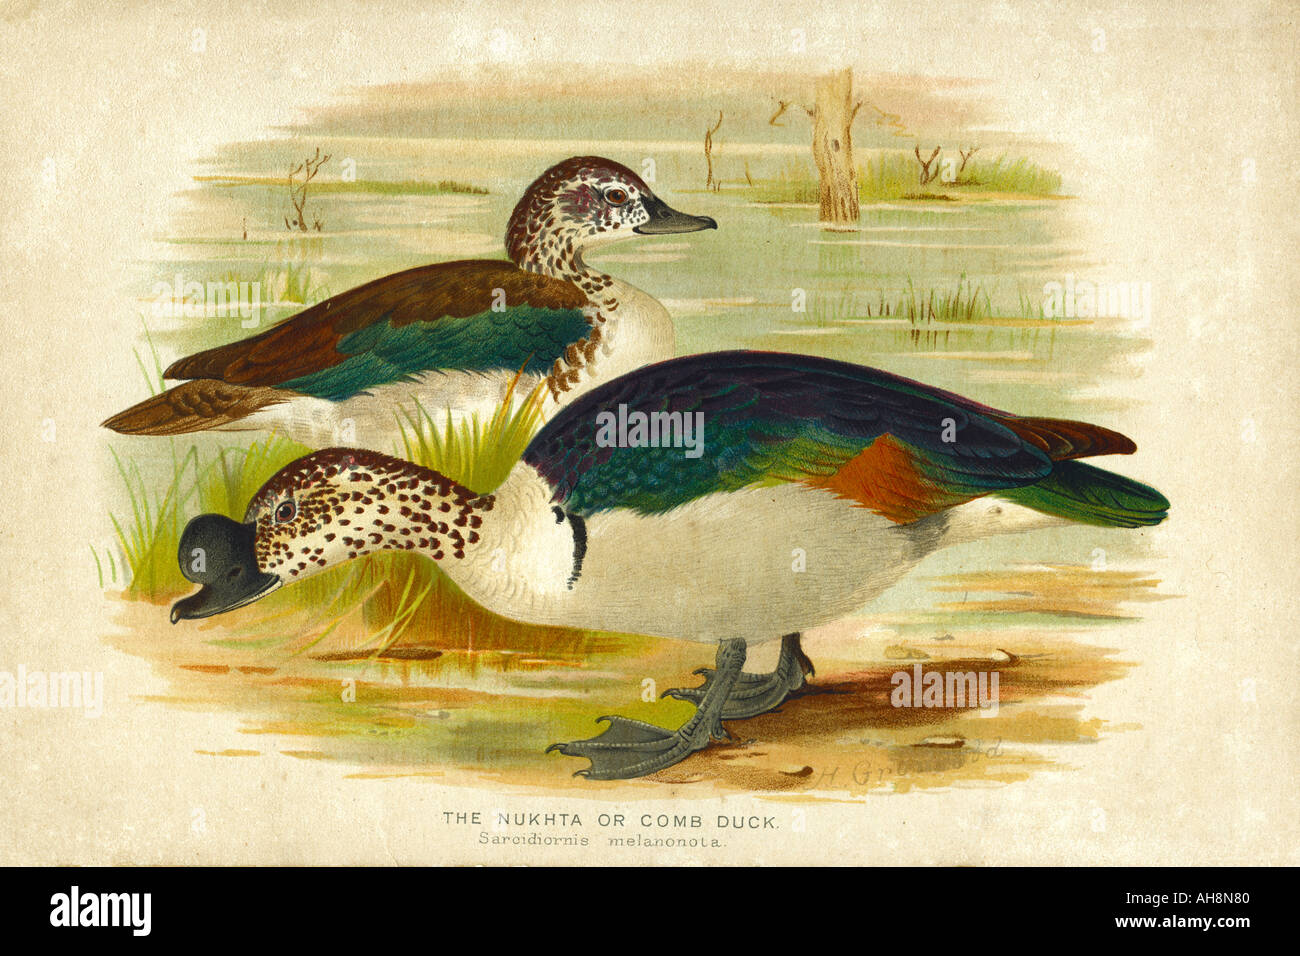 AAD71540 Nature History Painting of two Nukta comb duck bird Stock Photo